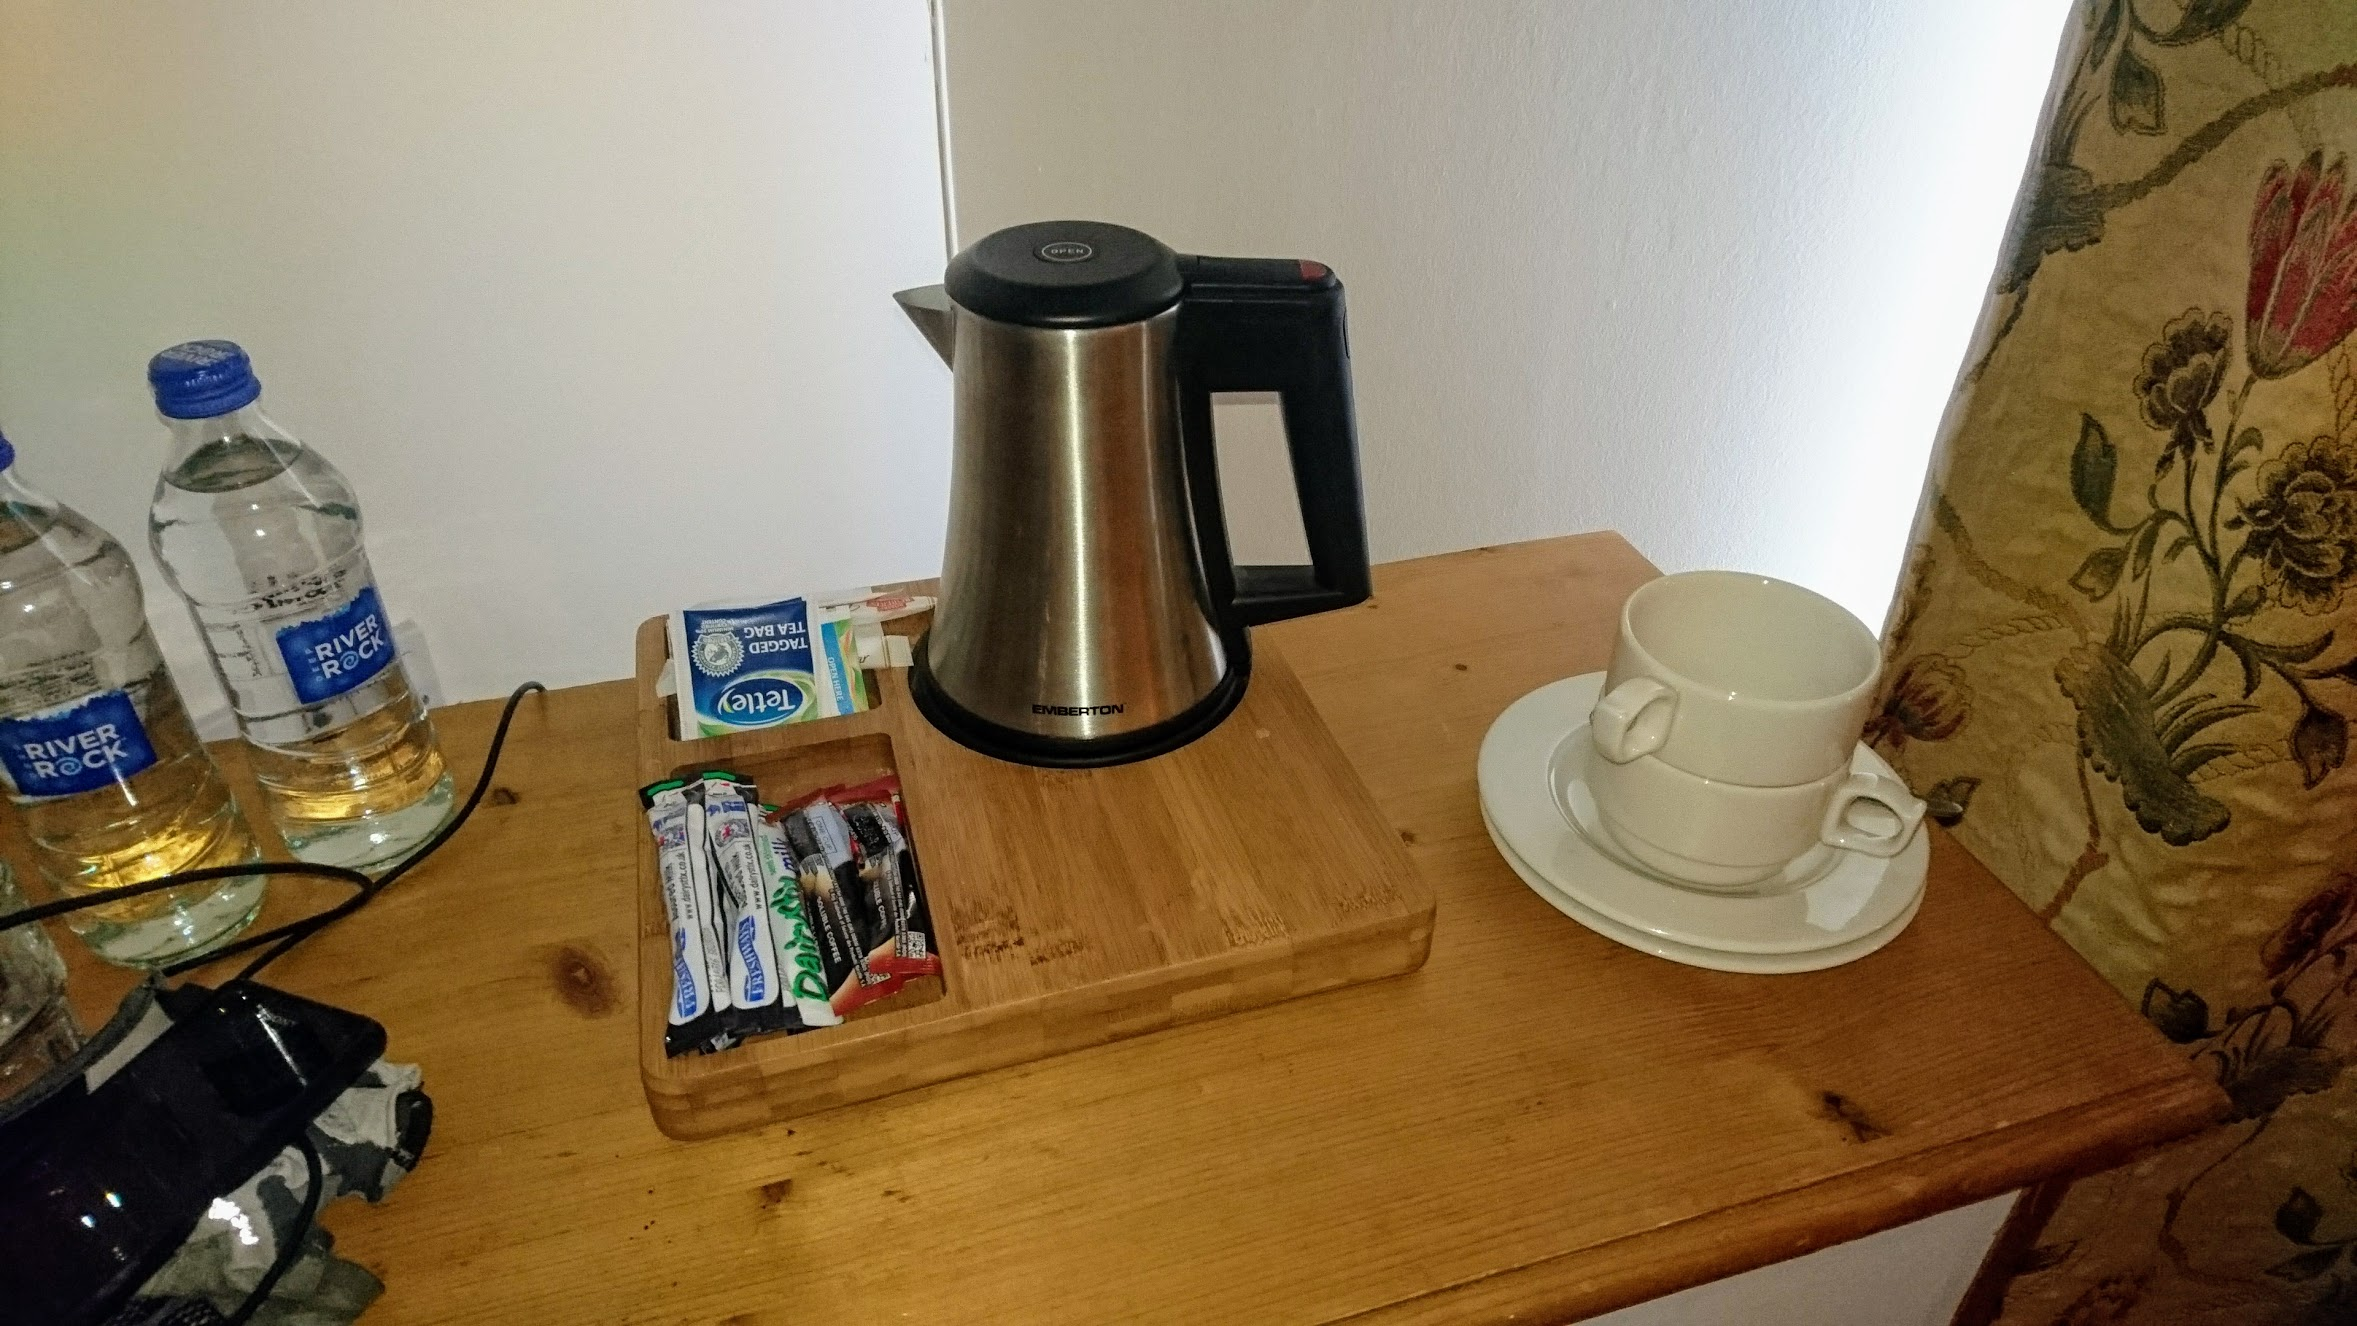 """A kettle (or """"water boiler thingy"""", as a certain American bewildered by this advanced technology calls it), complete with tea sachets, two mugs, sugar, cream, and milk. People in the UK love their tea - entire books on British social behaviour have been written around this beverage."""